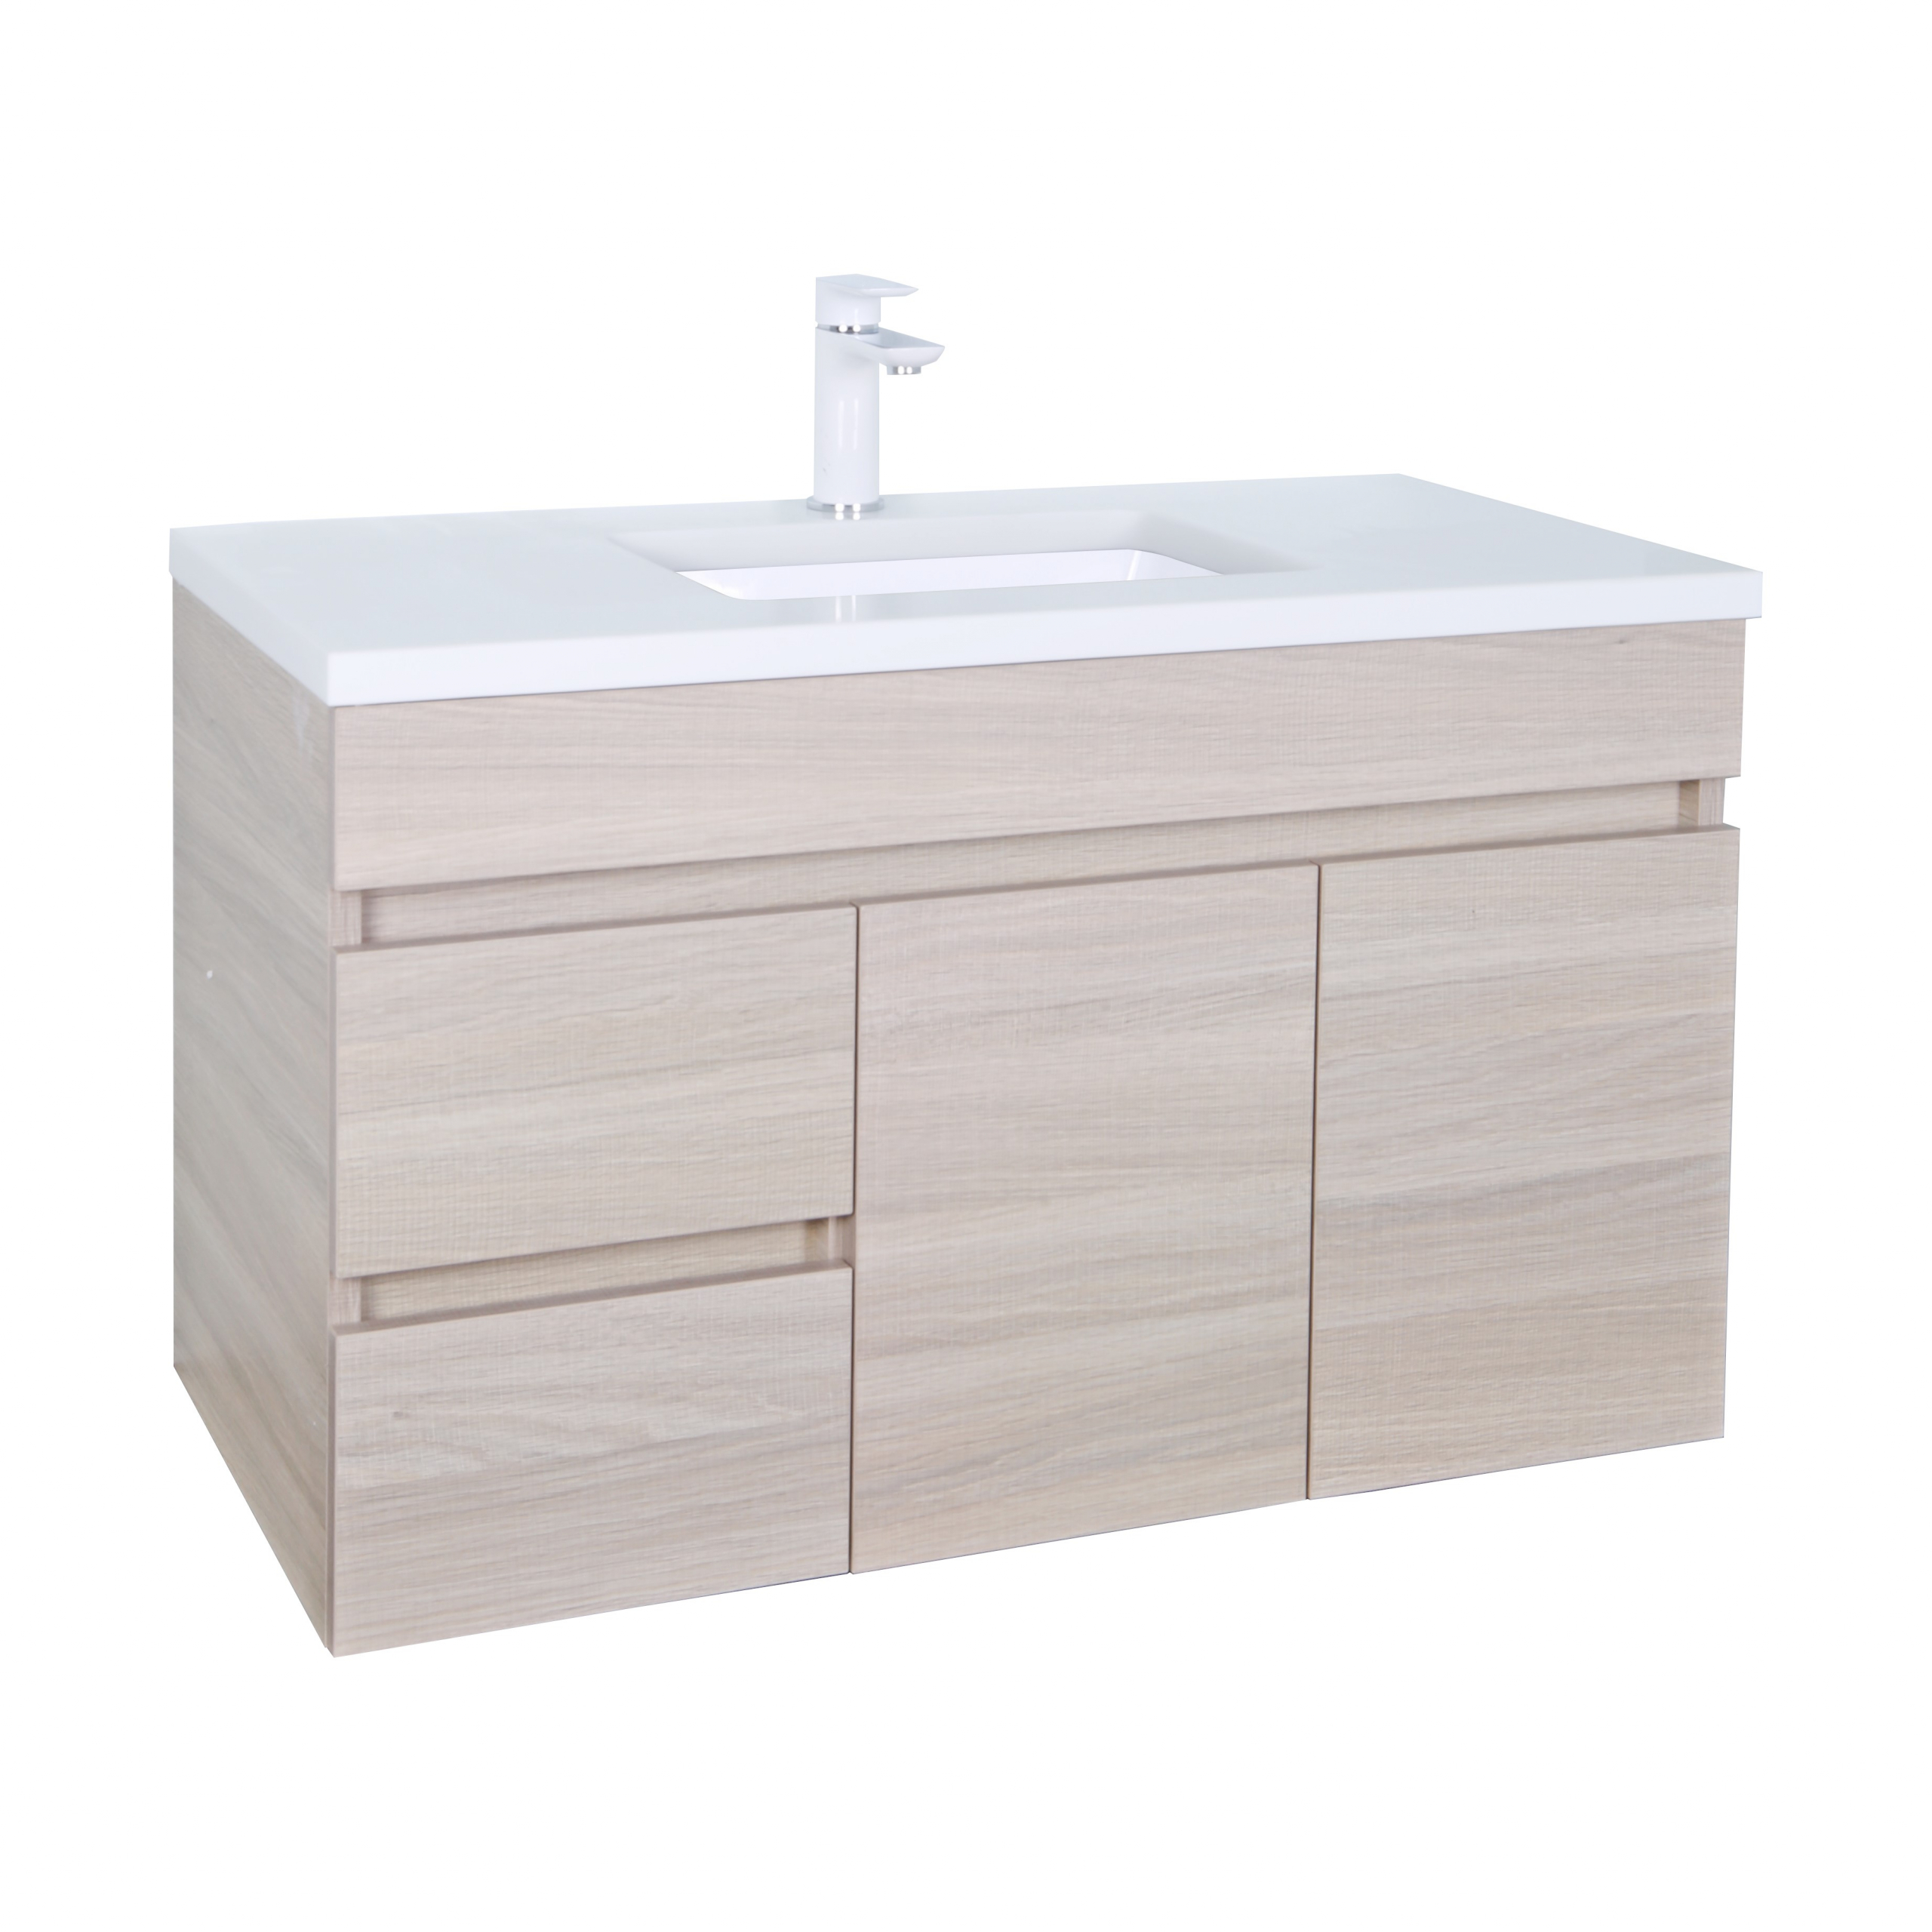 Evie Color Vanity EV94LWH-OAK